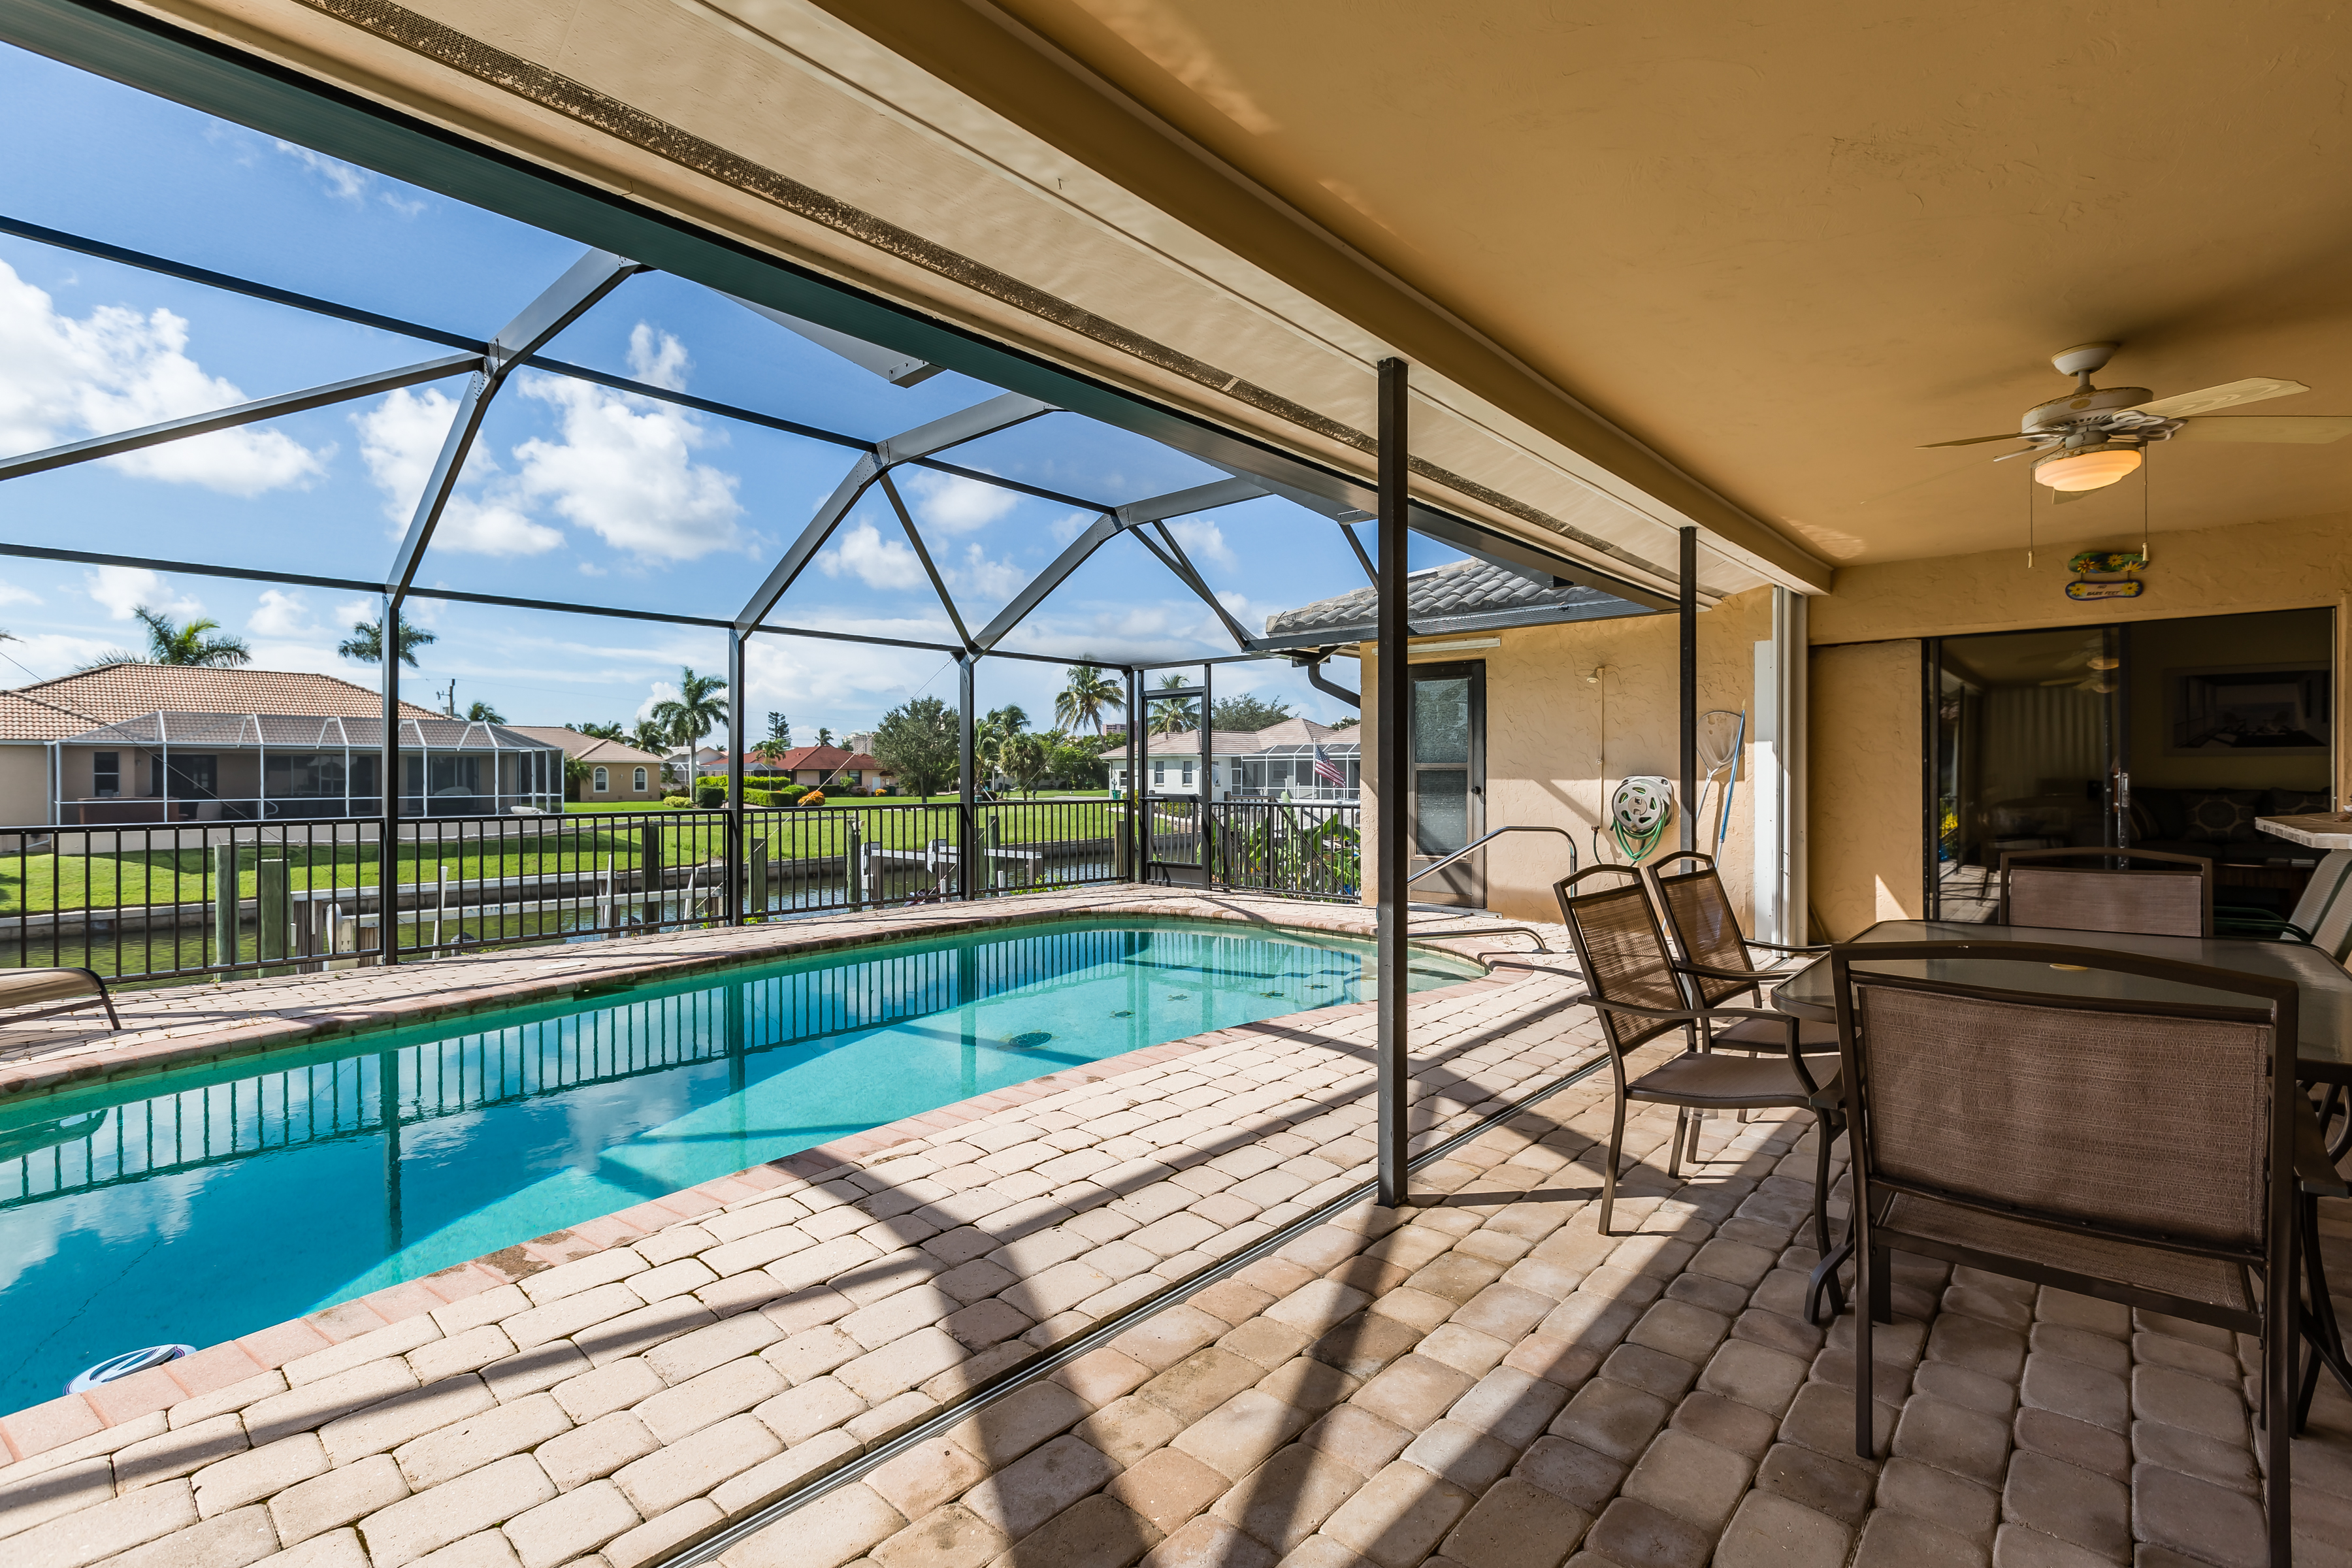 Outside Dining/Pool